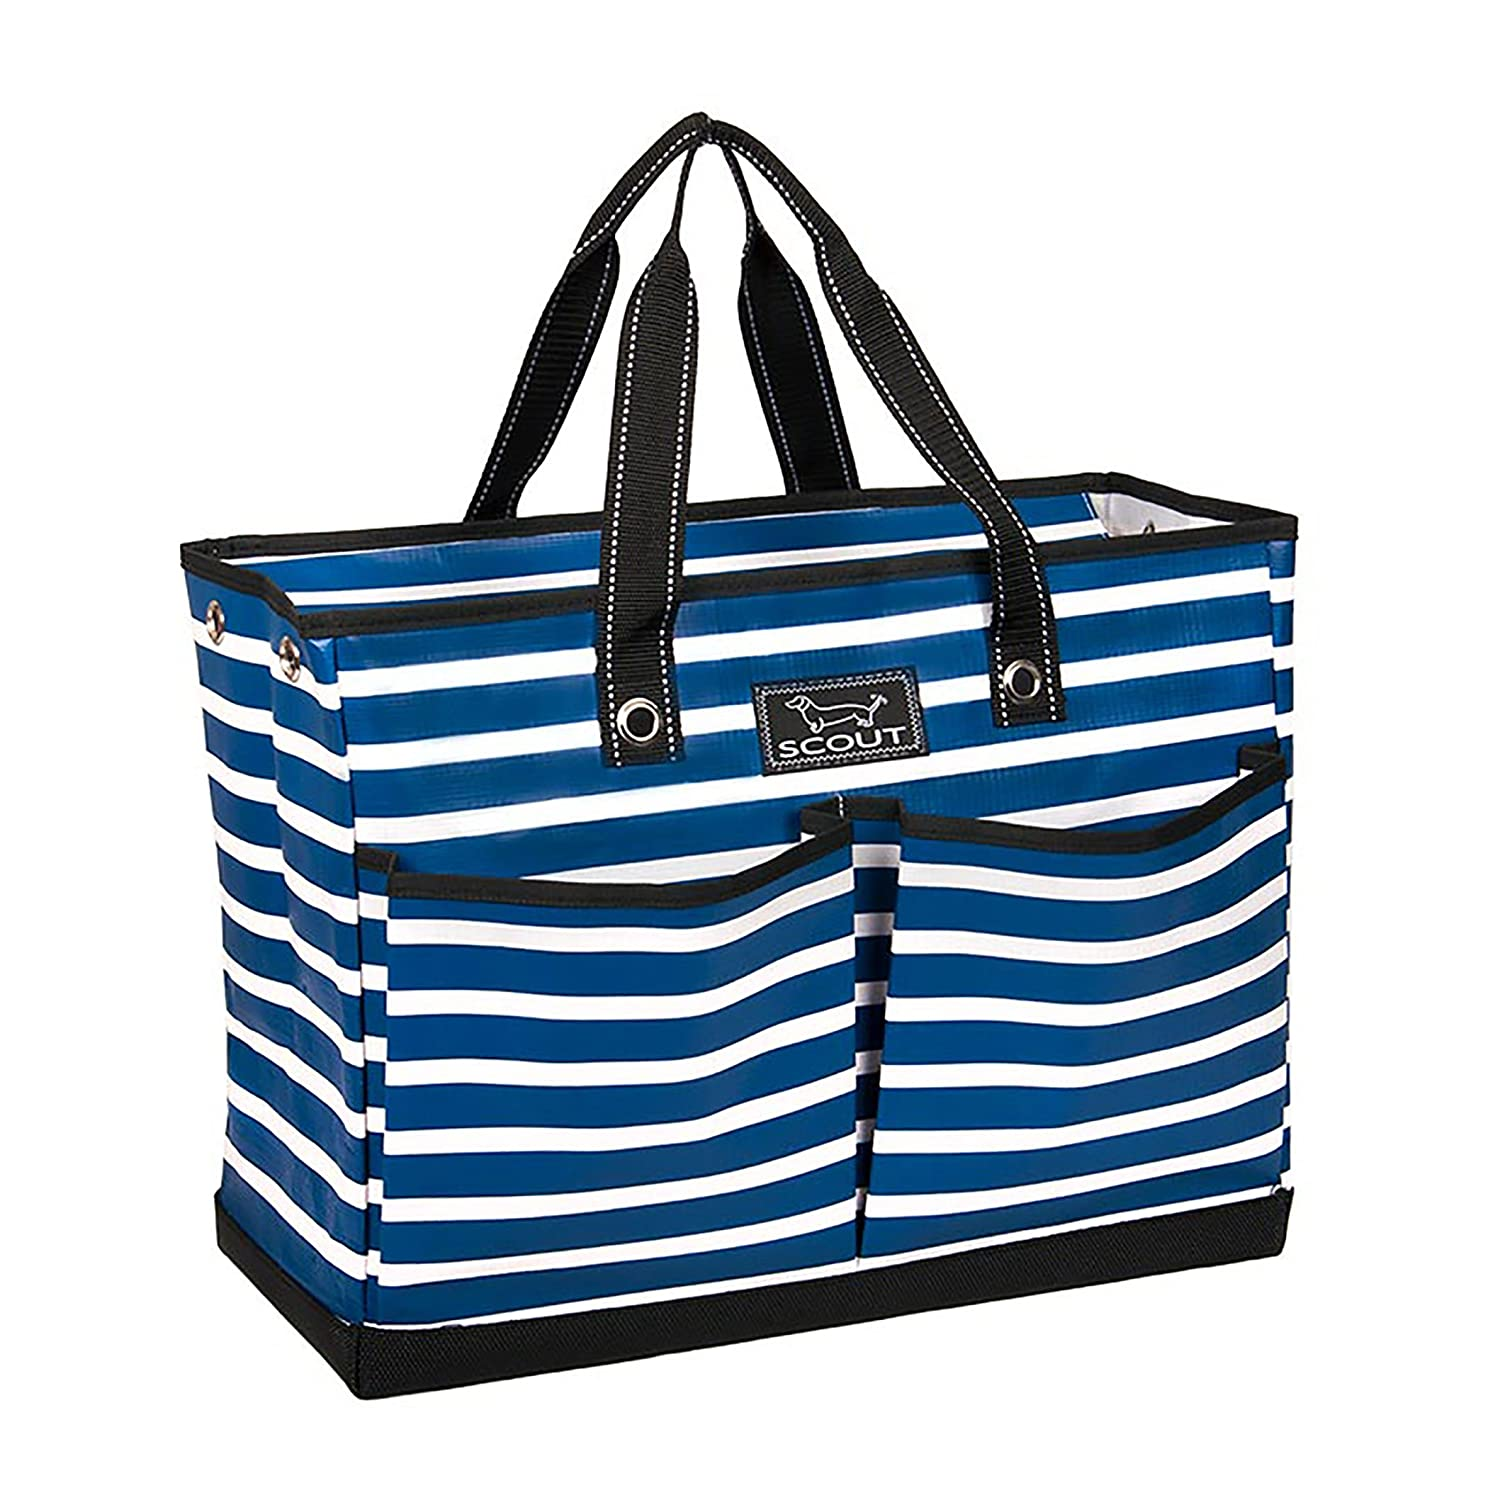 SCOUT BJ Bag, Large Multi Pocket Utility Tote for Beach and Pool, Reinforced Bottom, Water Resistant, Zips Closed Zips Closed (Chalk Back) 15864